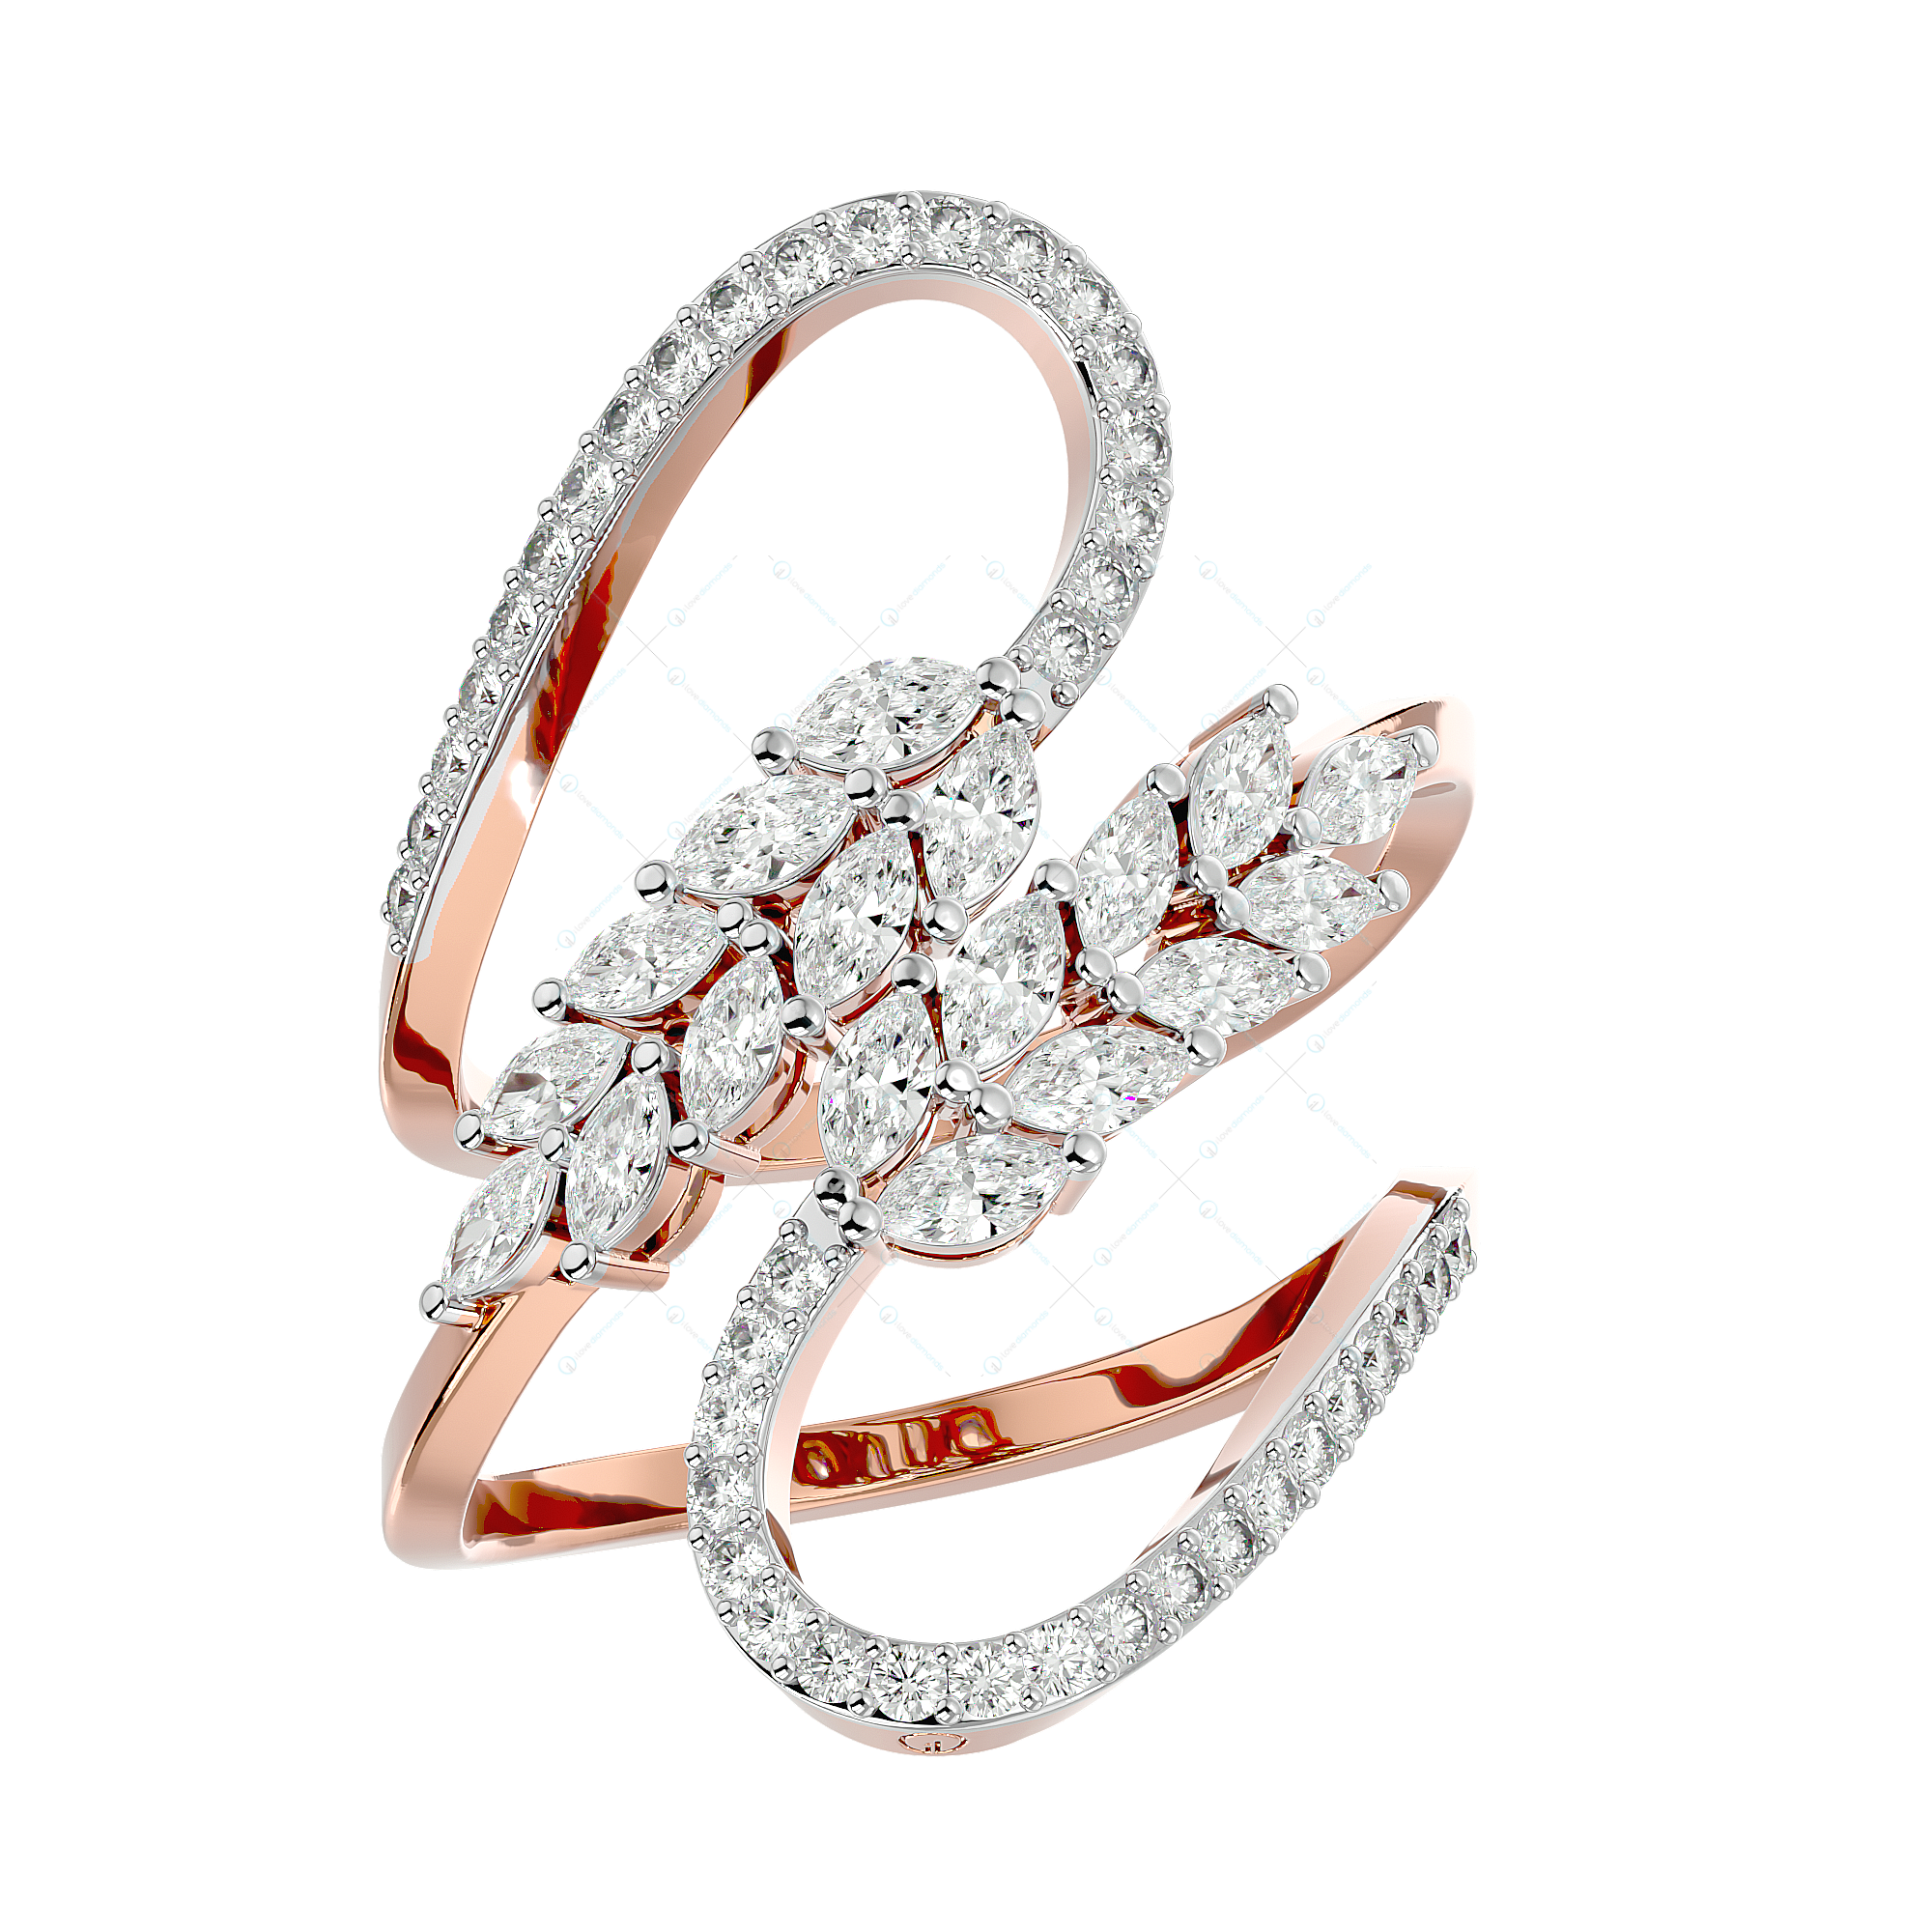 Twining Tendrils Diamond Ring In Pink Gold For Women v1